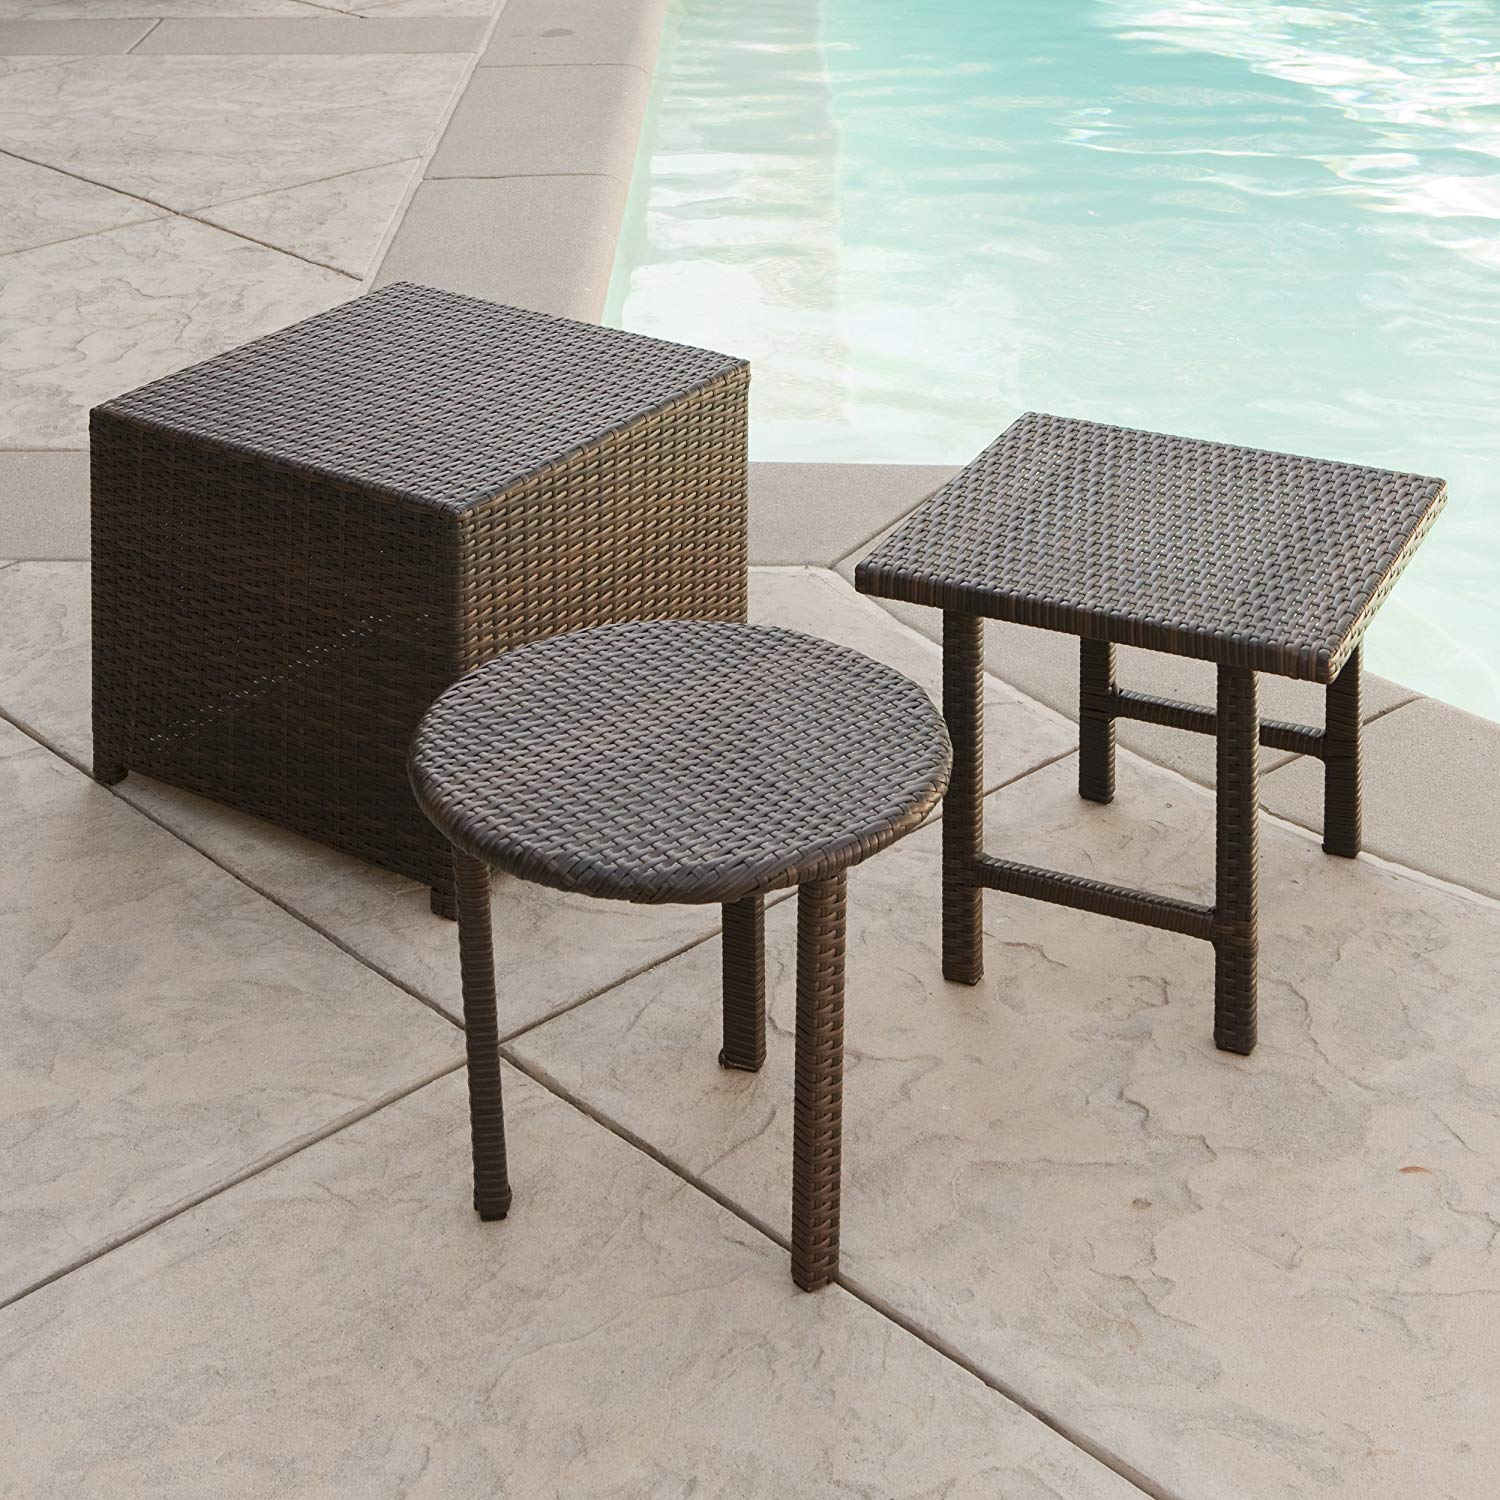 best selling palmilla wicker table set multibrown garden patio accent side tables outdoor wine rack towel holder mosaic bistro dining room sets bedside design ideas round coffee